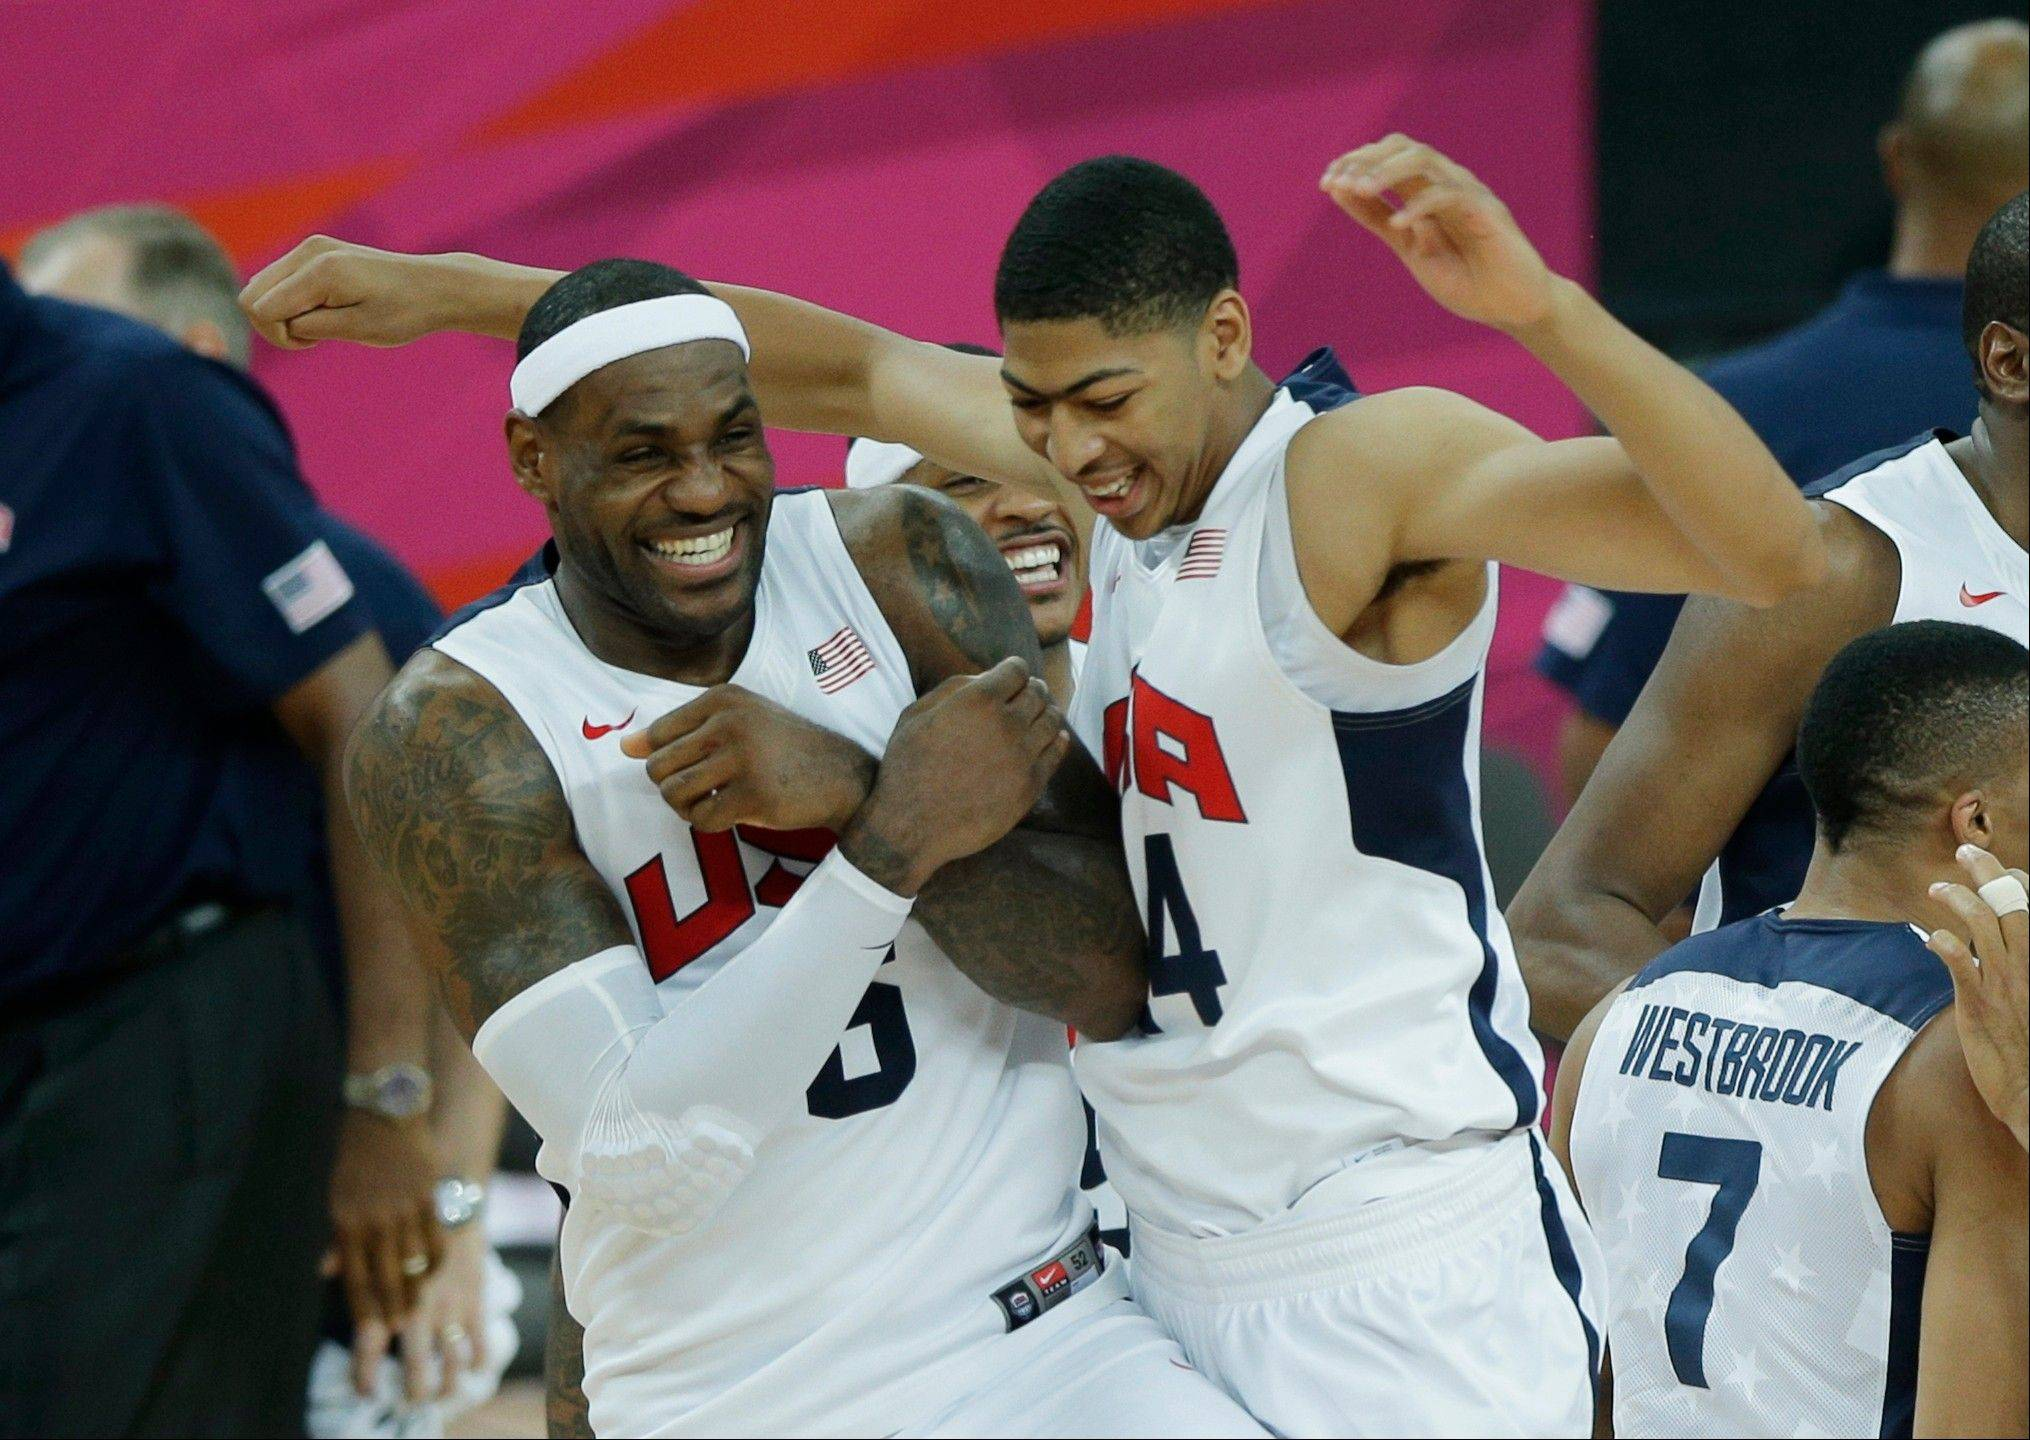 United States' LeBron James, left, and Tyson Chandler celebrate after defeating Spain, 107-100, to win the men's gold medal basketball game at the 2012 Summer Olympics Sunday in London.